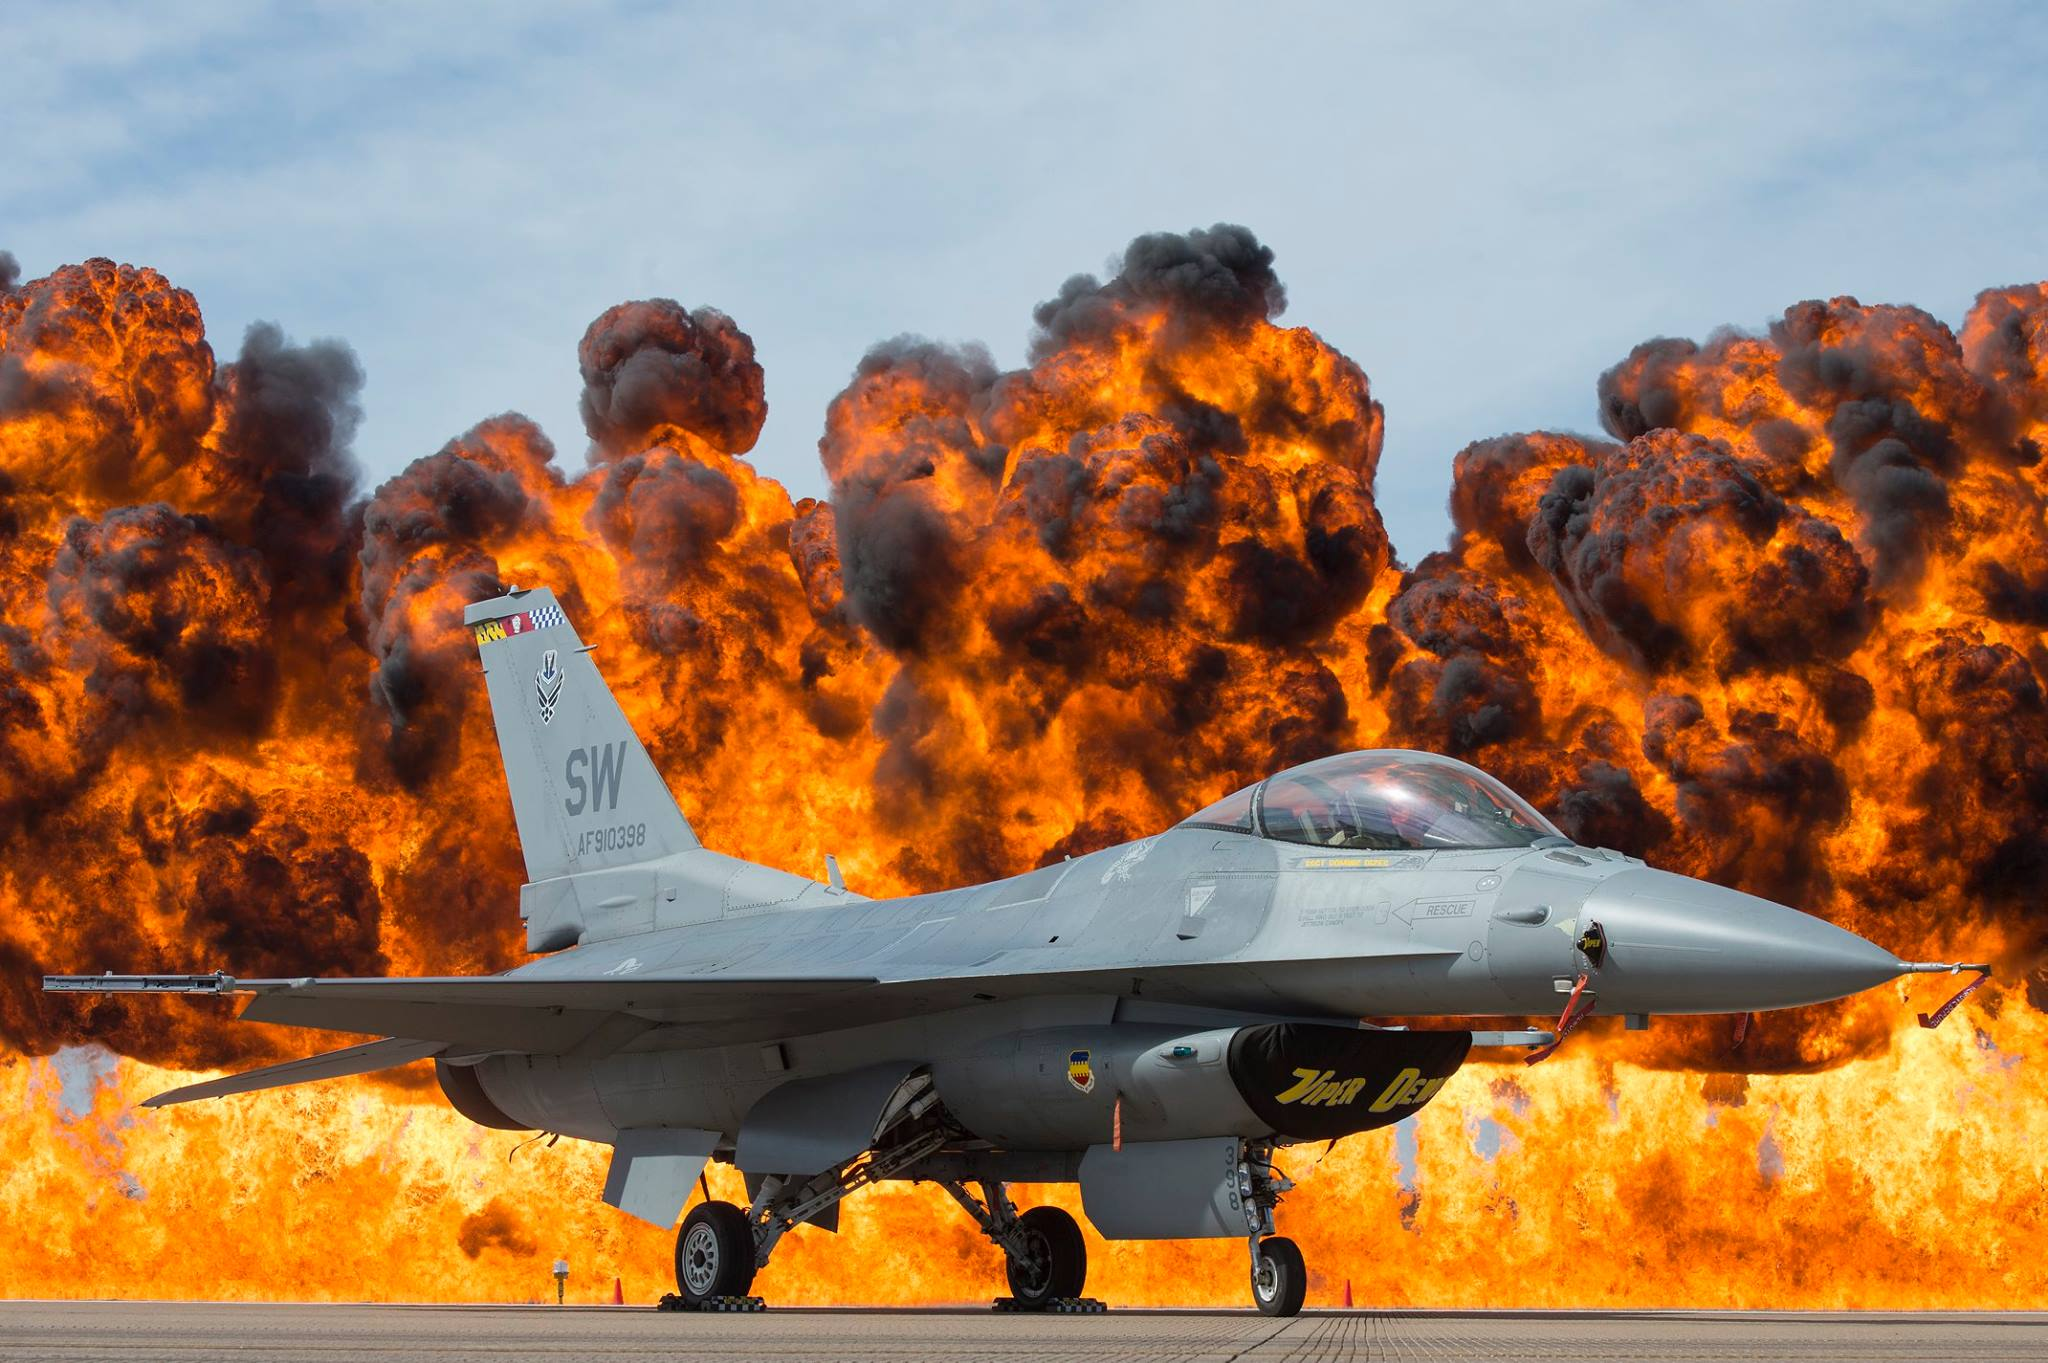 File:US Air Force F-16 Viper at the Fort Worth Airshow, 2017.jpg ...